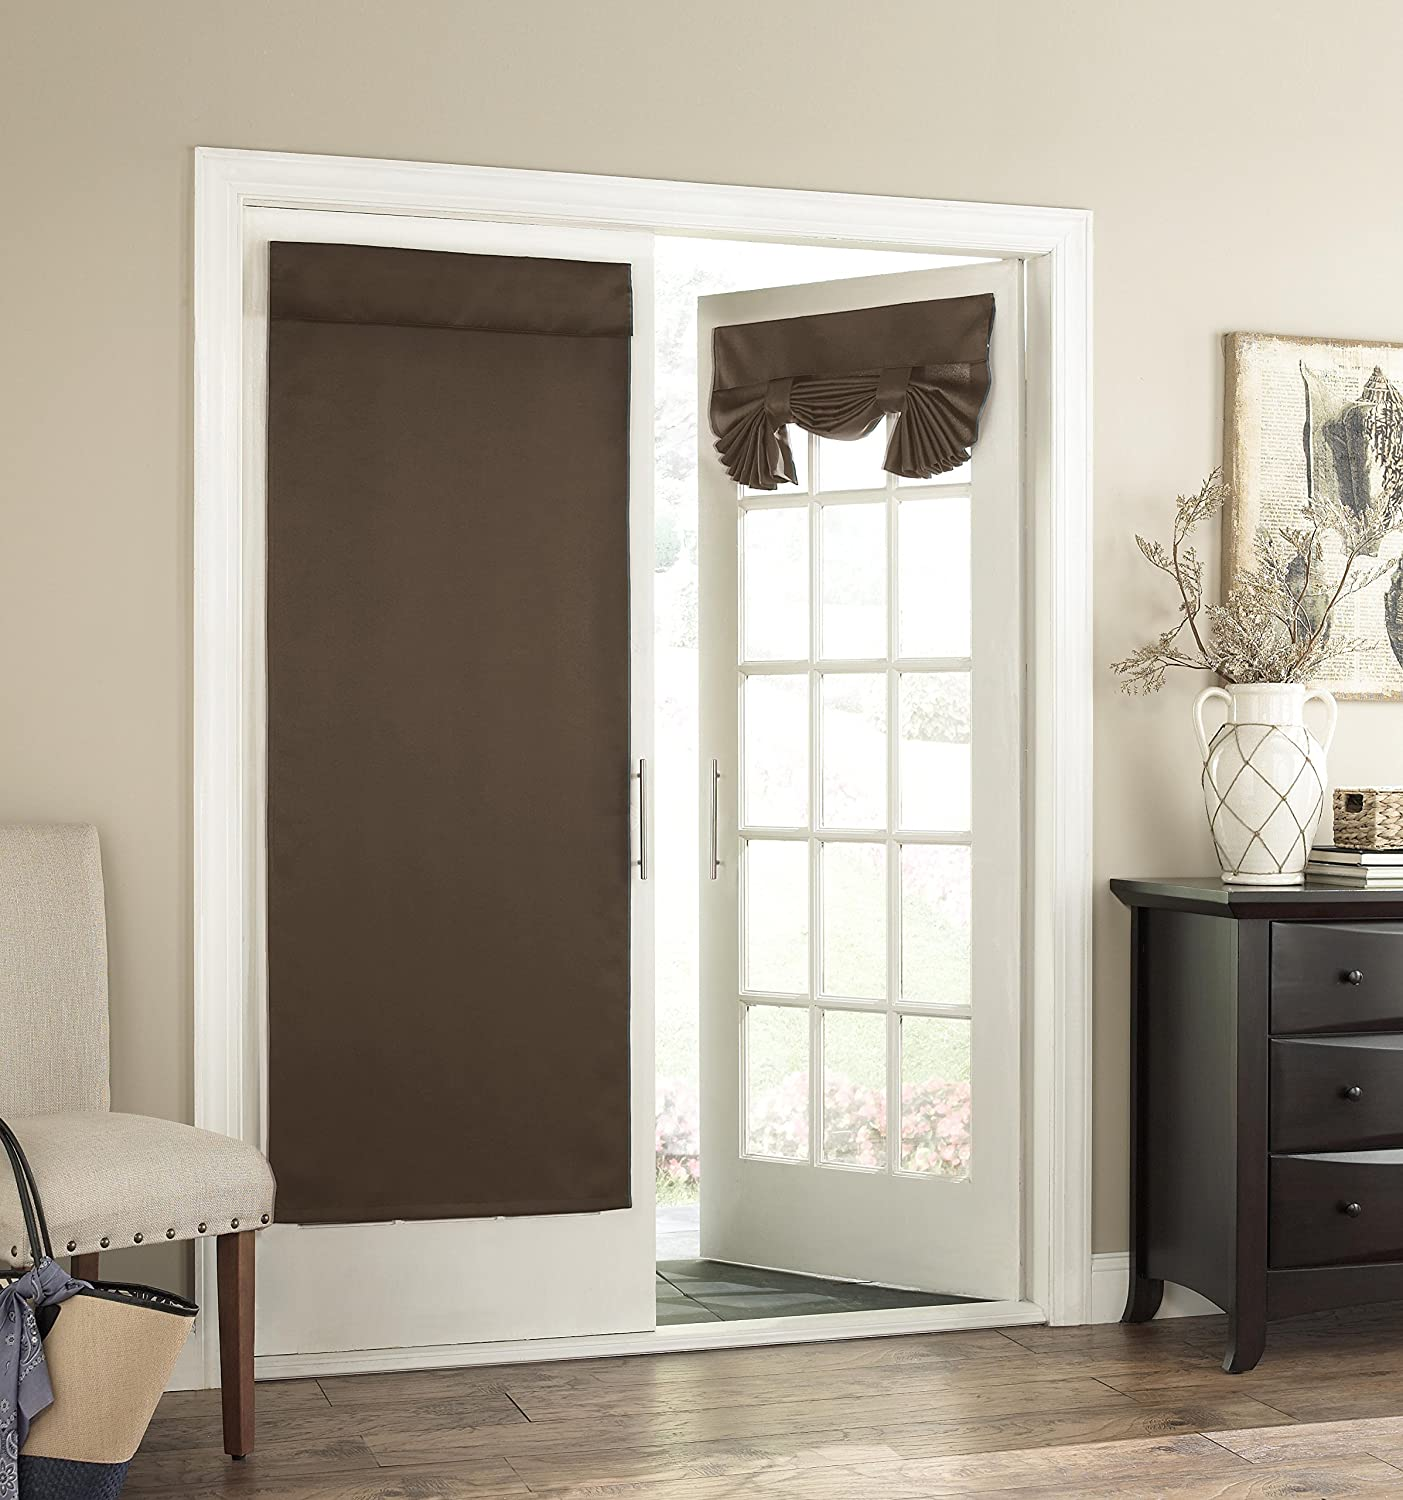 Image result for Patio Door